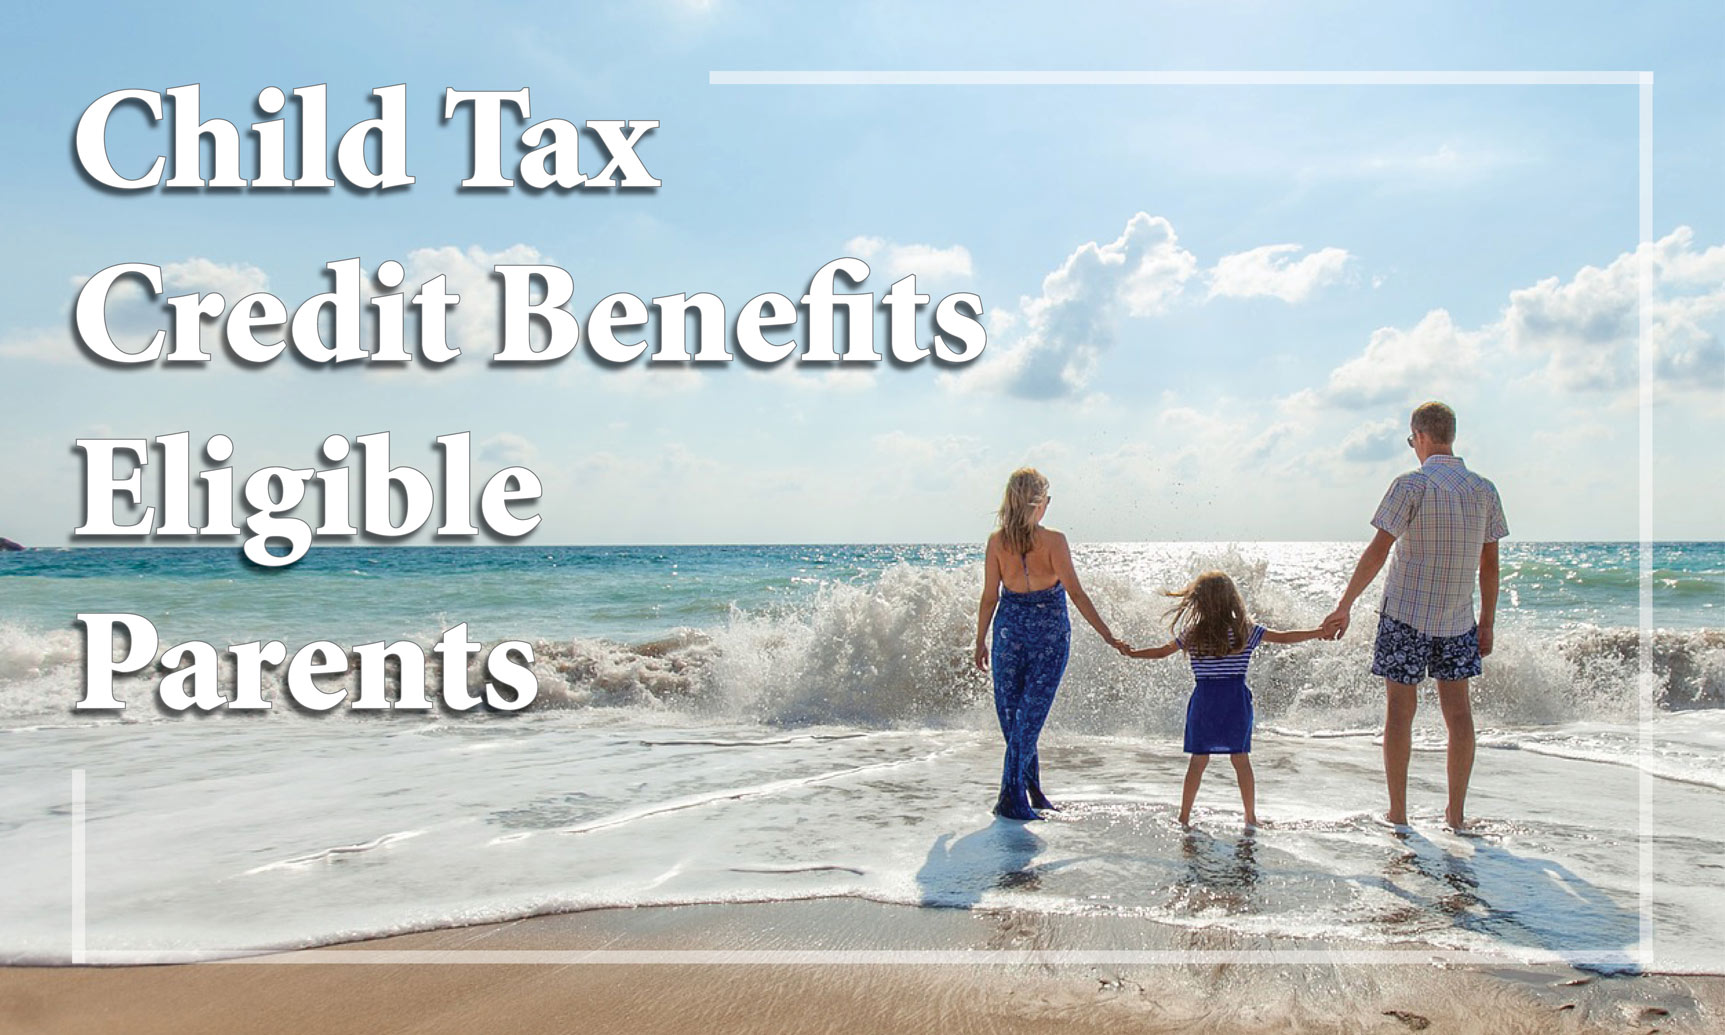 Child Tax Credit Benefits